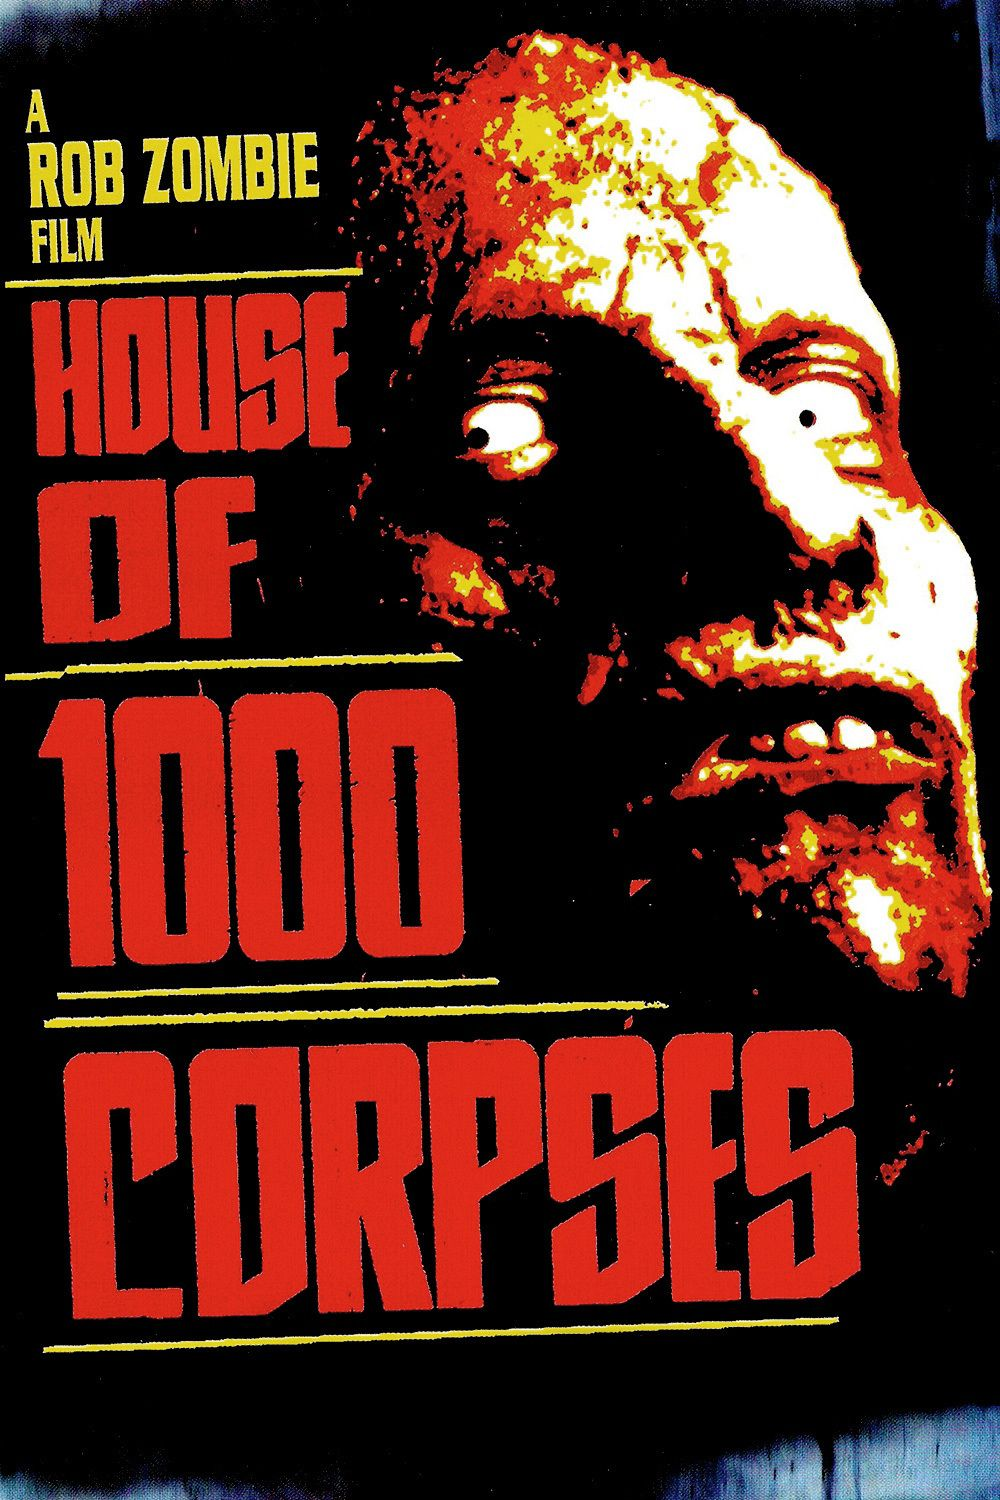 Poster for House of 1000 Corpses